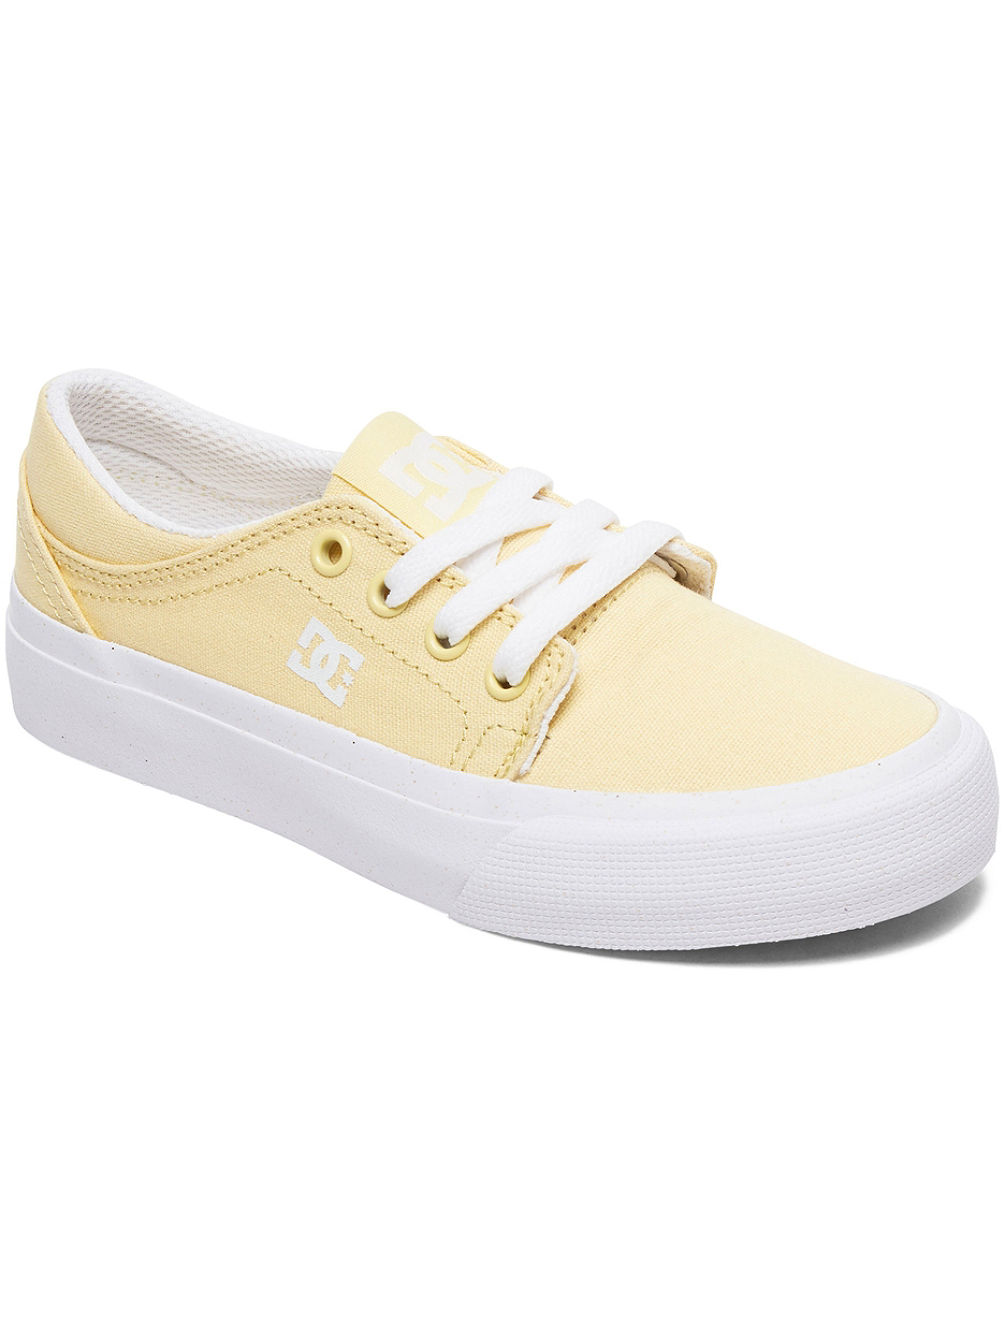 Buy DC Trase TX SE Sneakers Girls online at blue-tomato.com 3f23927539b